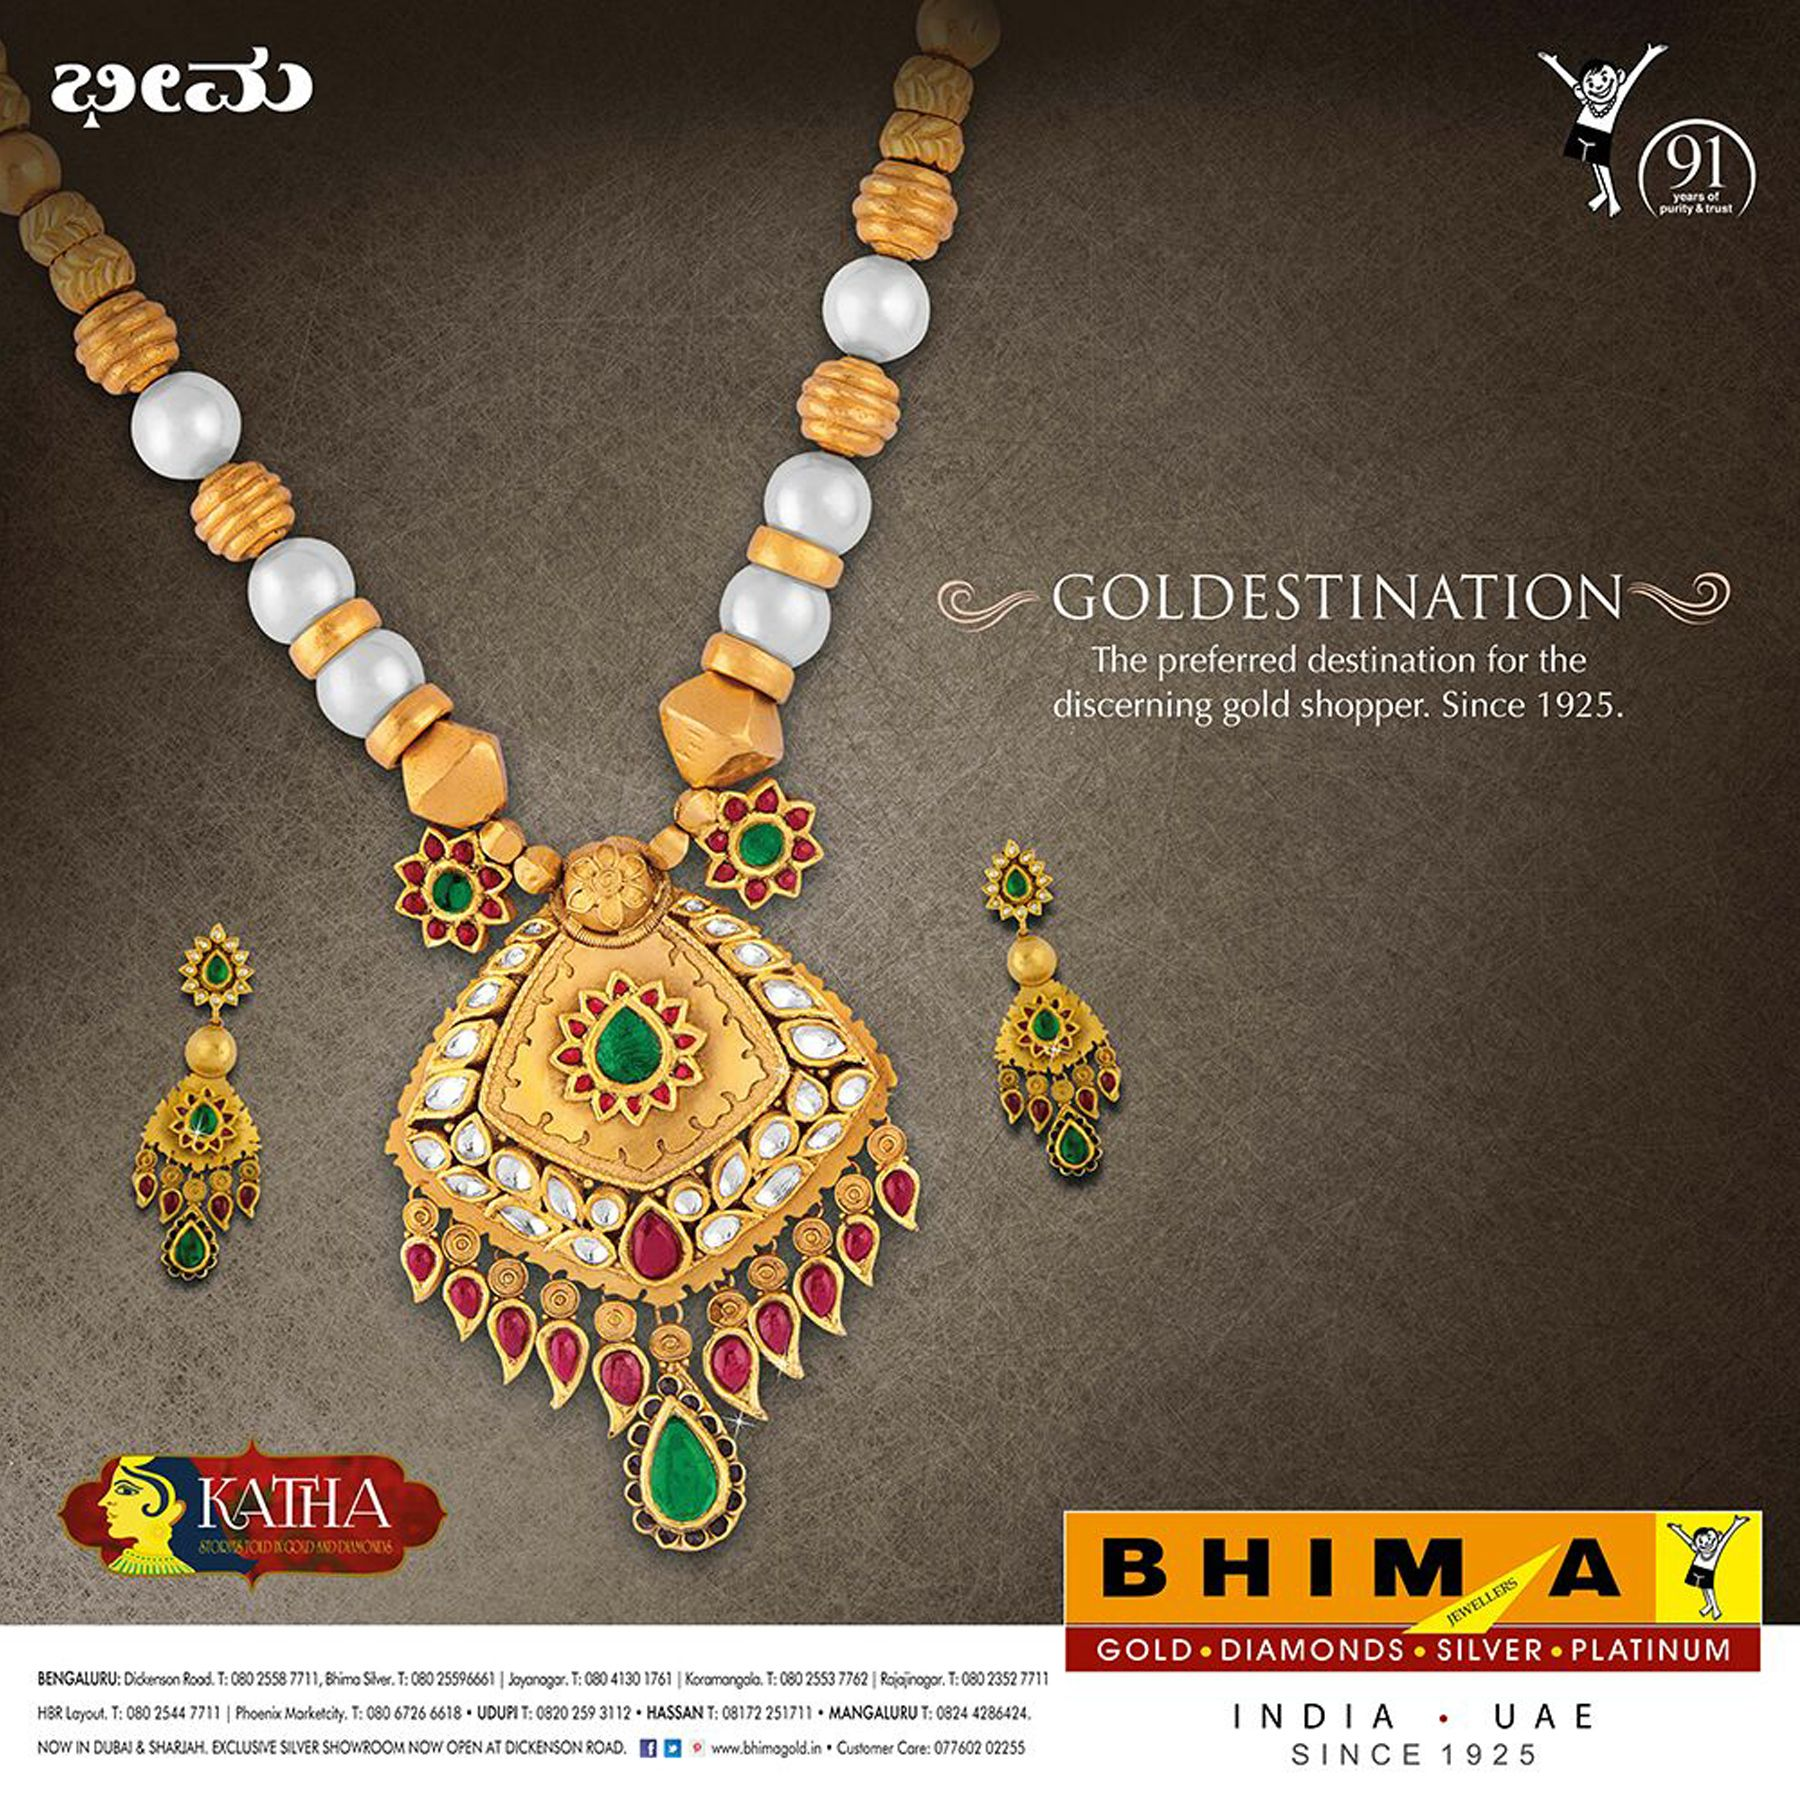 #KathaCollection, by #Bhima! Stories etched in #Gold. A combination of Gold and kundan stones. #BhimaGold #PureGold